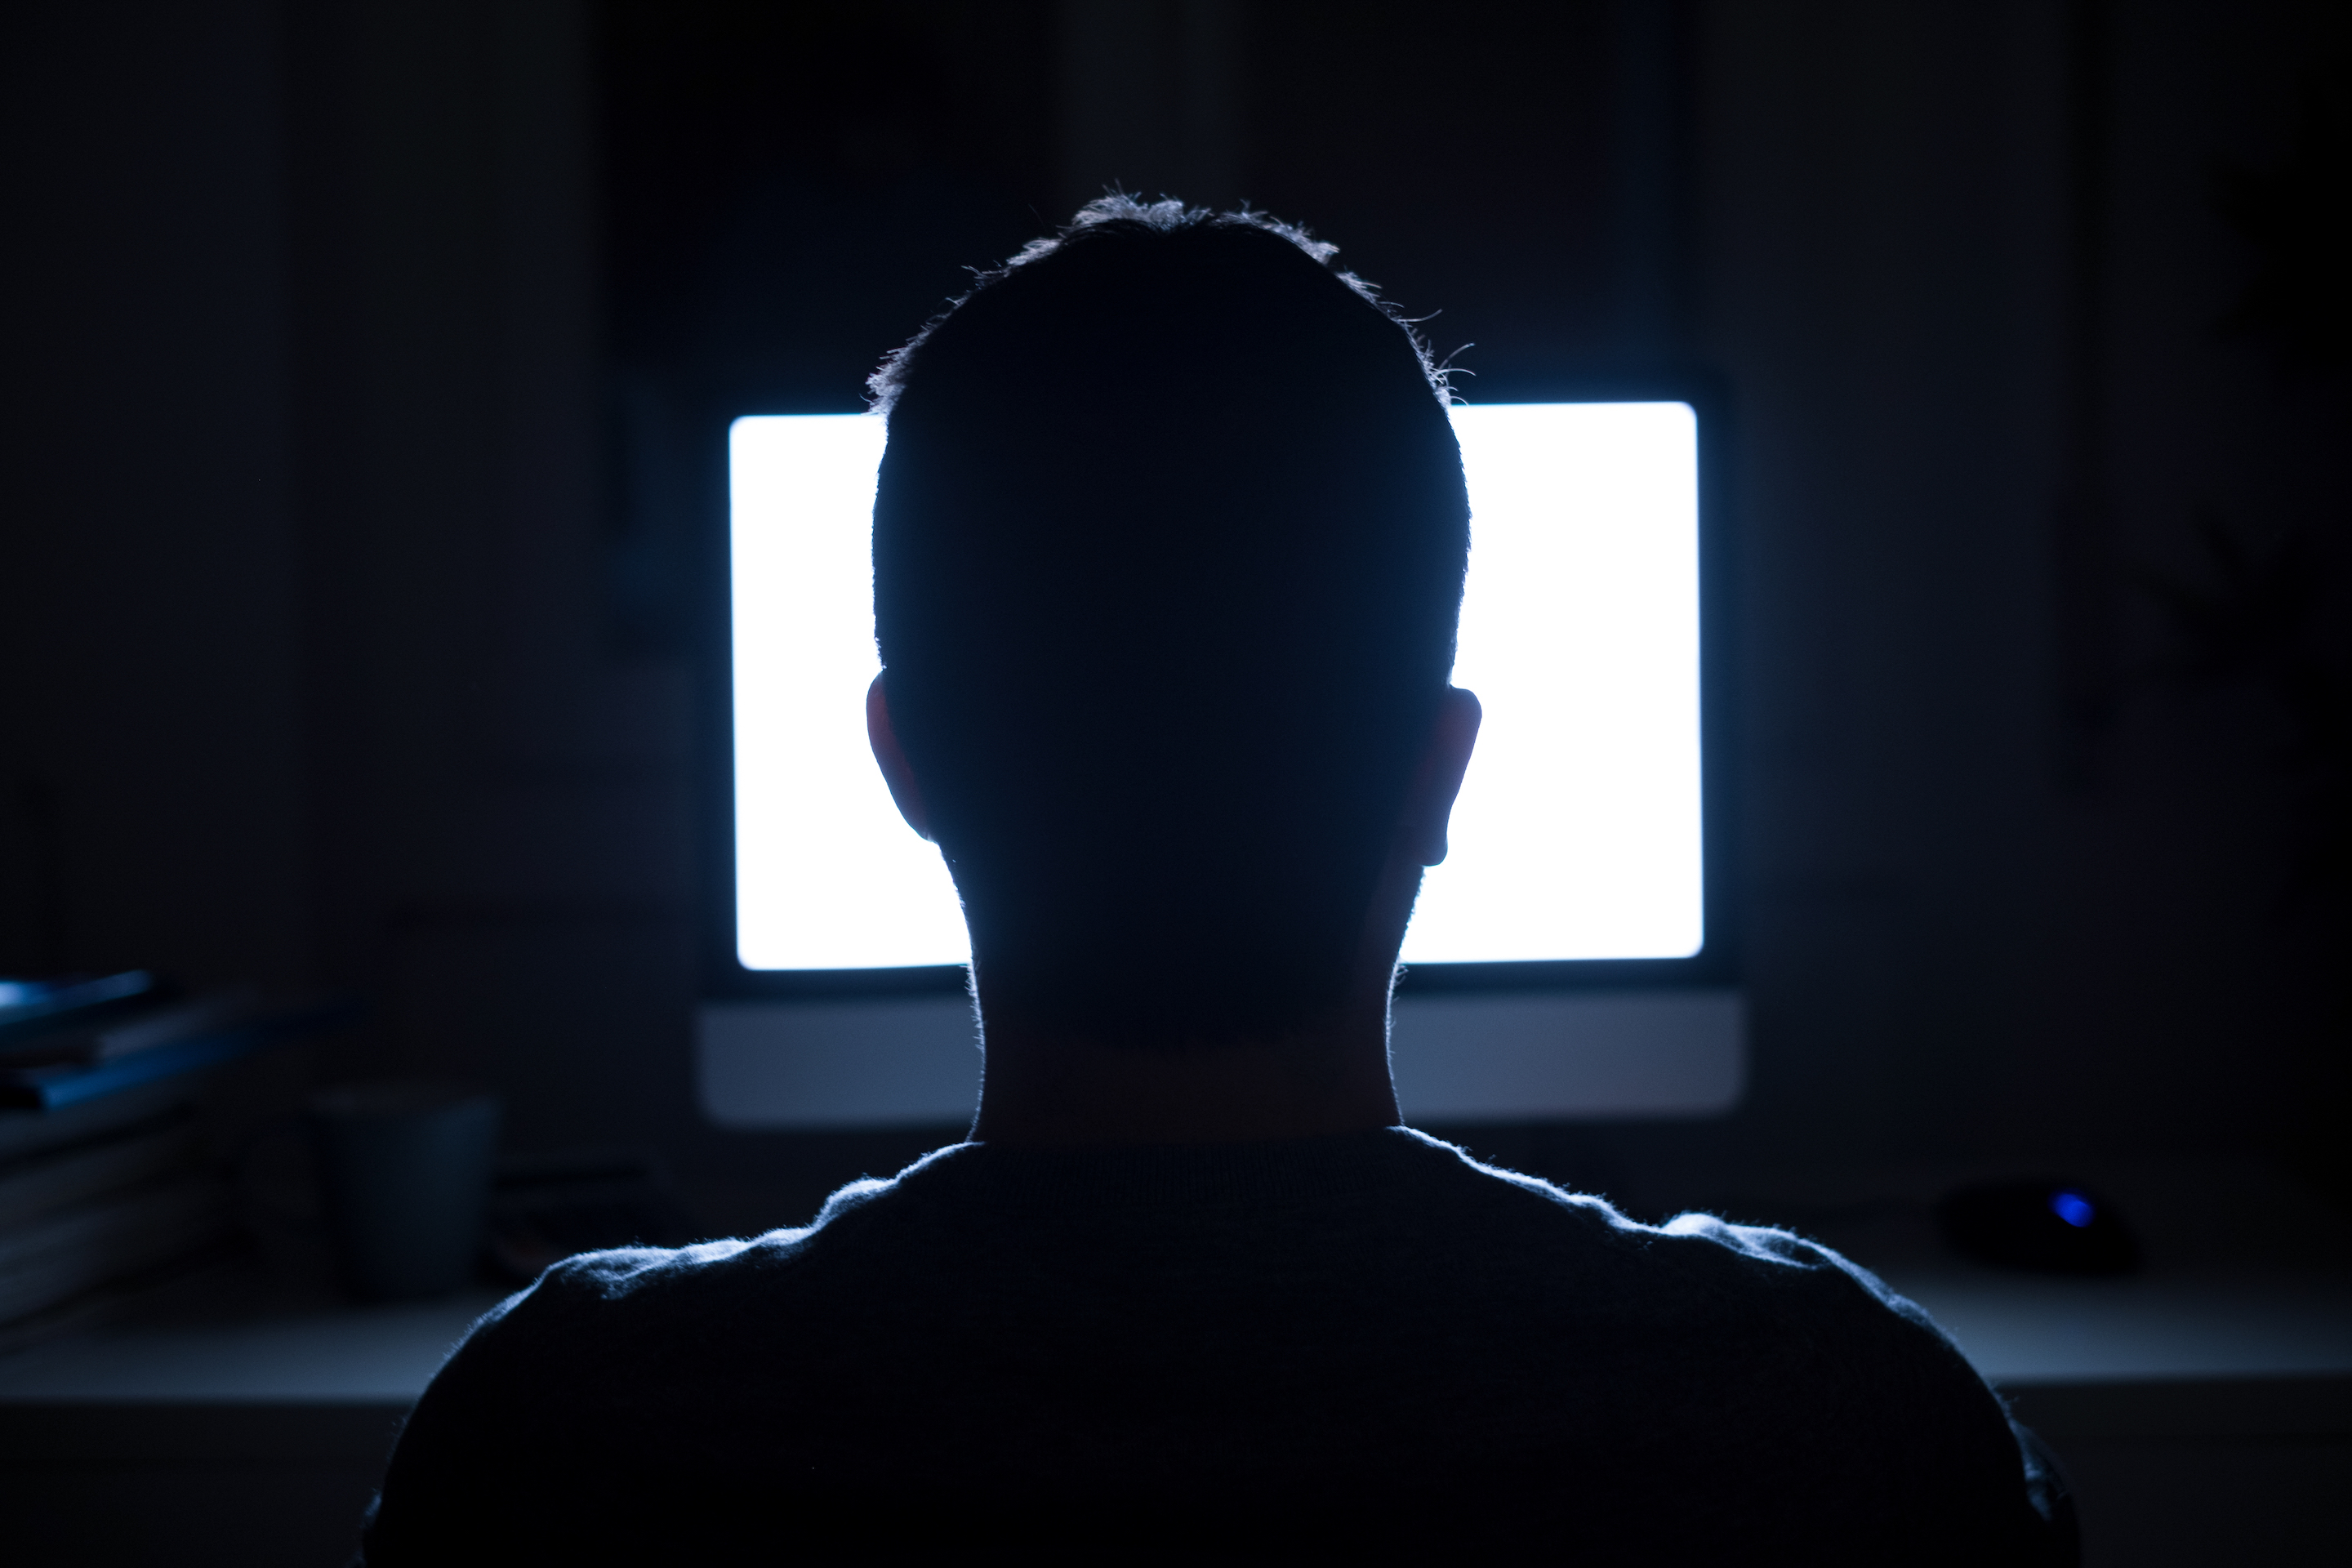 Man seated in front of computer monitor at night